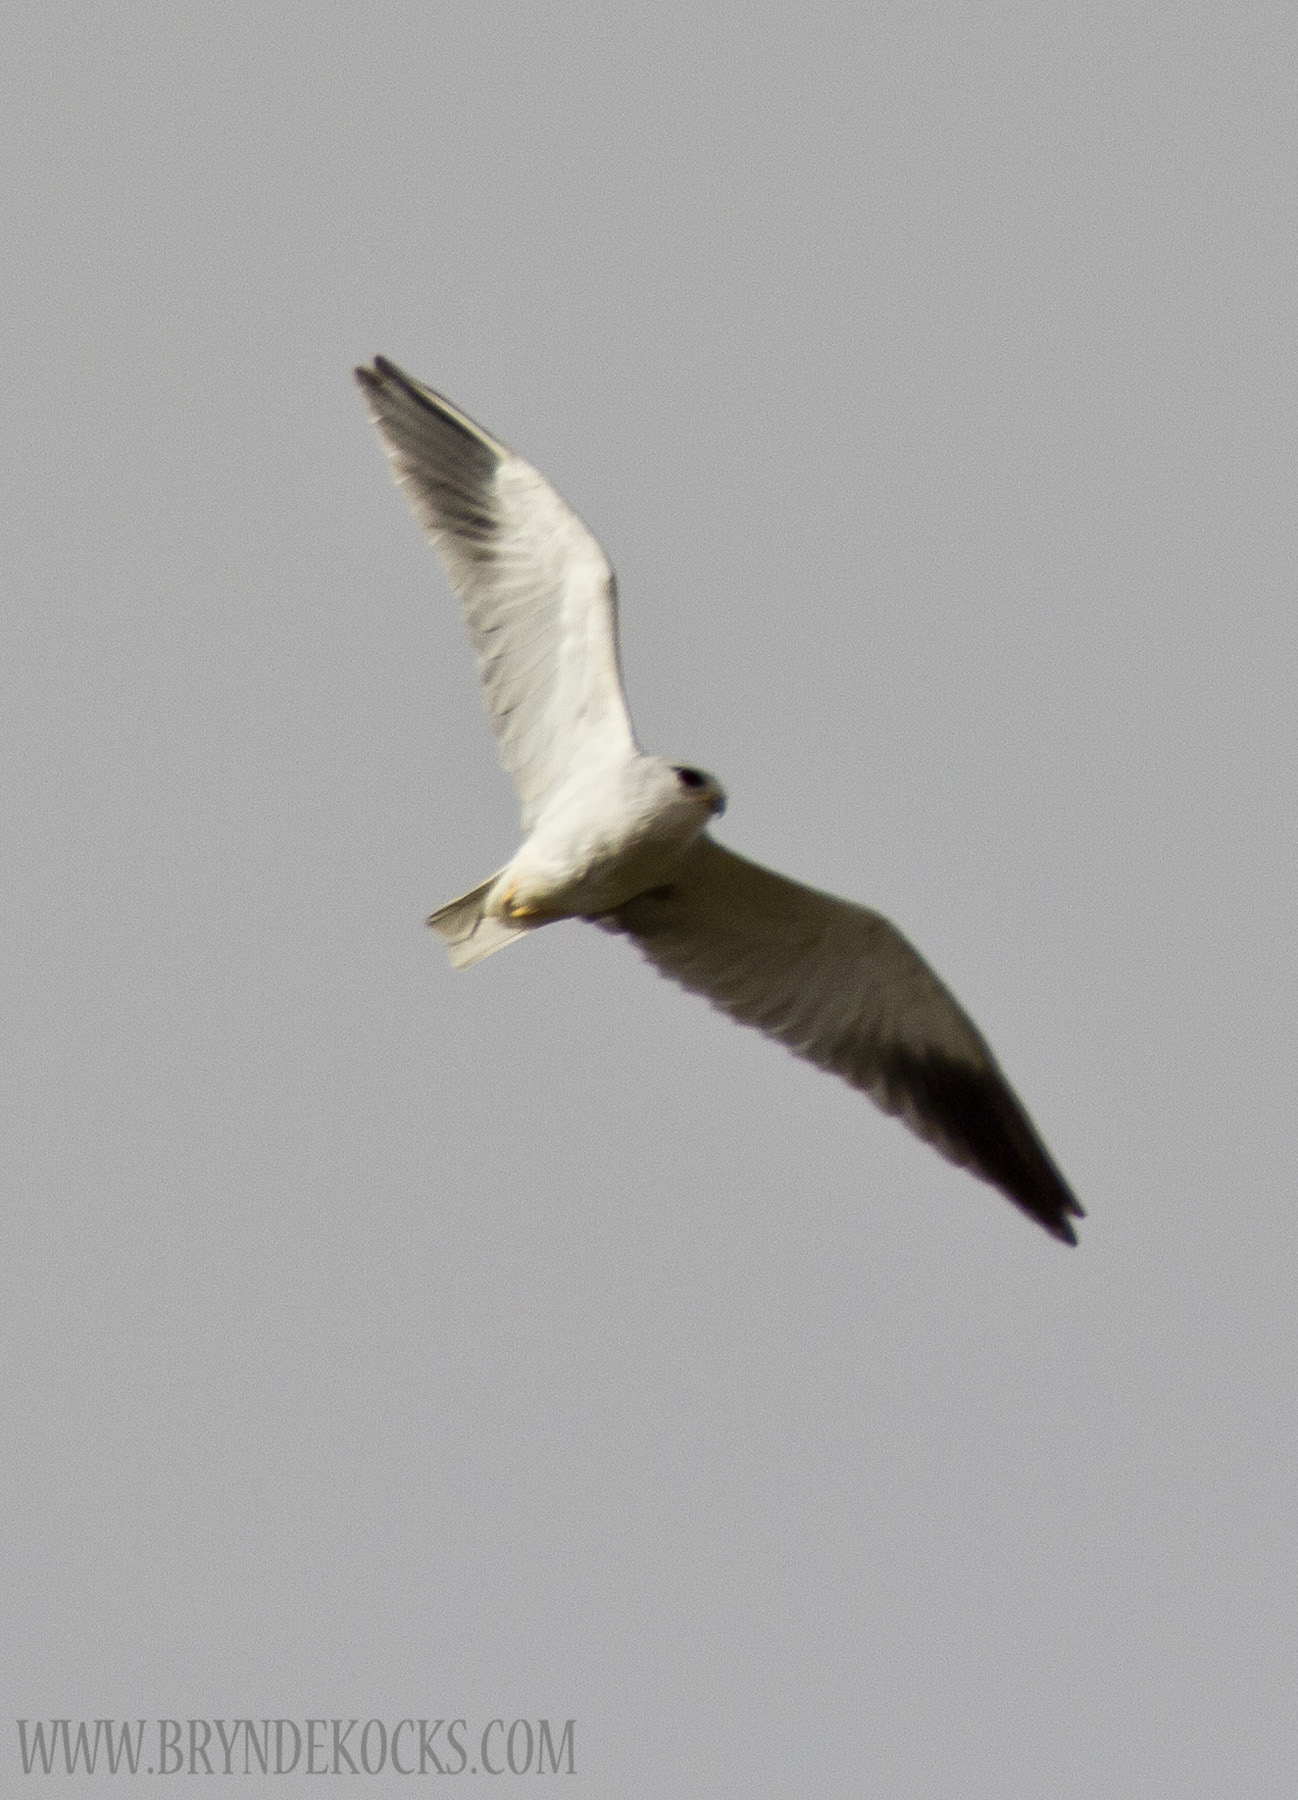 Black Shouldered Kite at the West Coast National Park